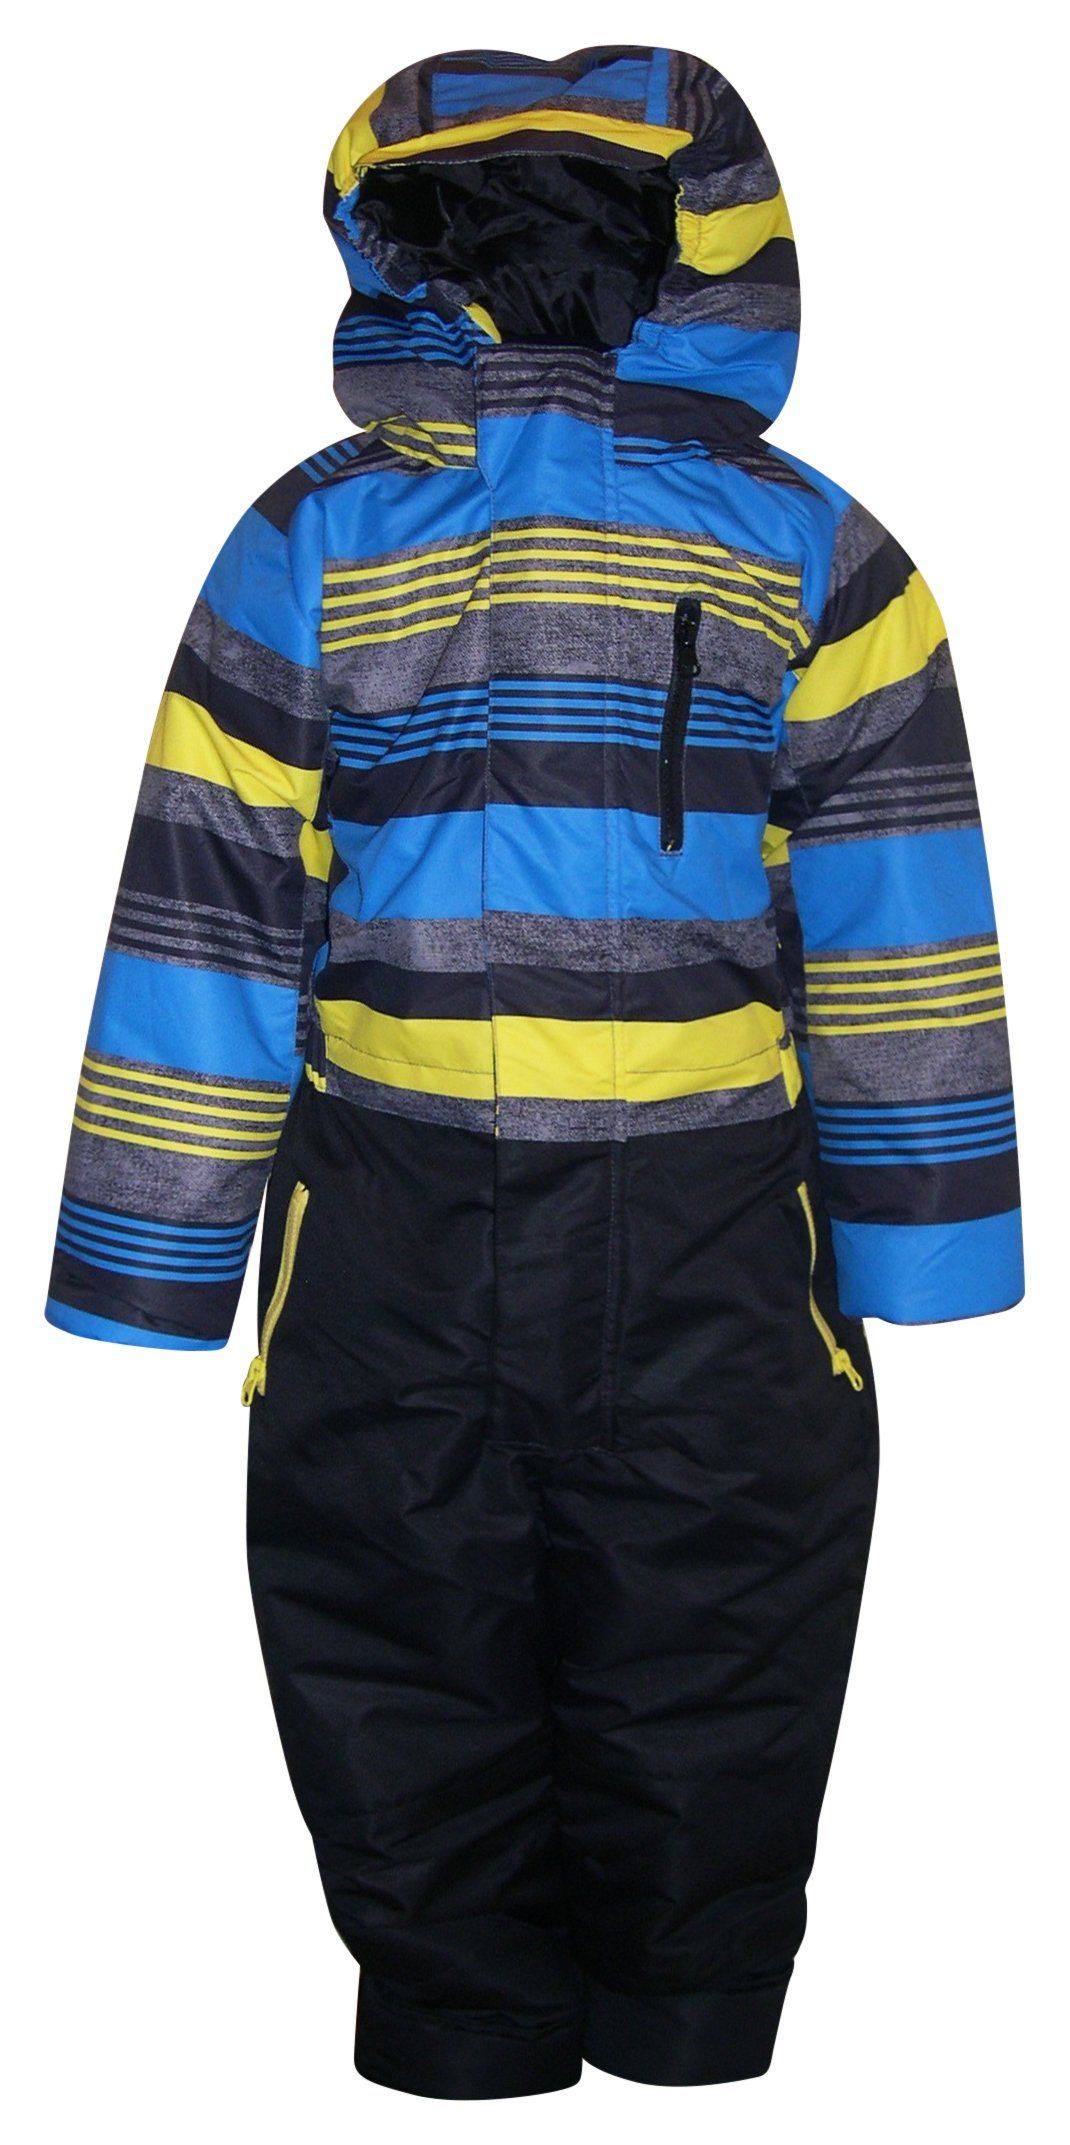 a19b453d4f03 Pulse Little Boys and Toddler 1 Piece Snowsuit Coveralls Dash ...